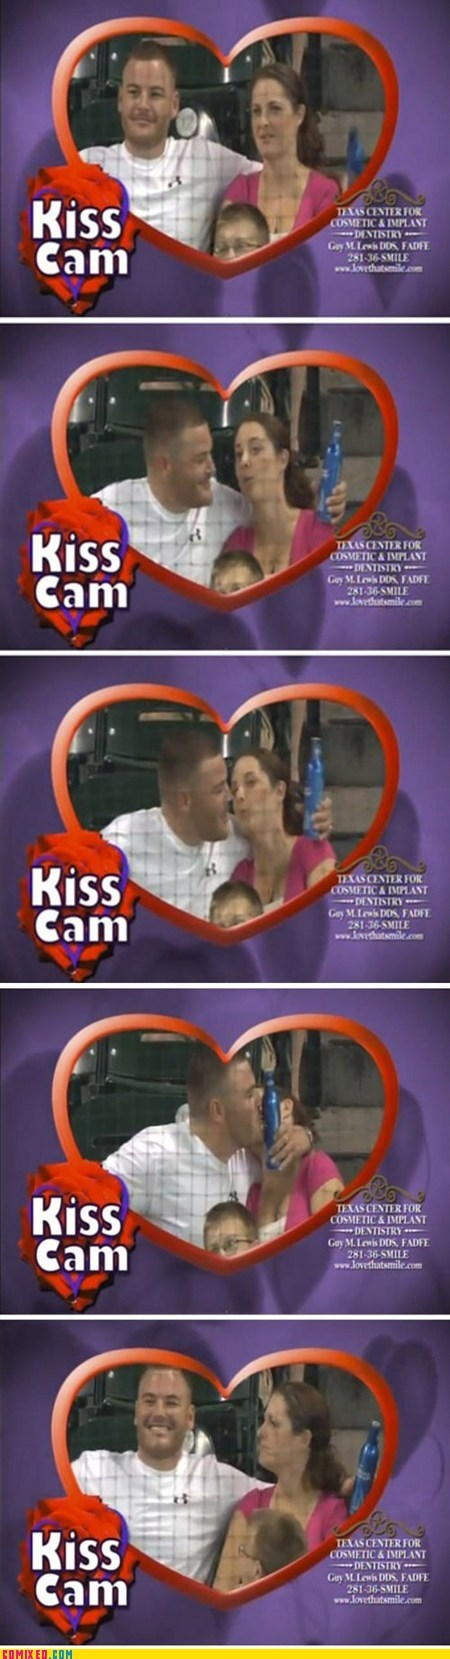 Kiss Cam sports TV worth it - 6527327744